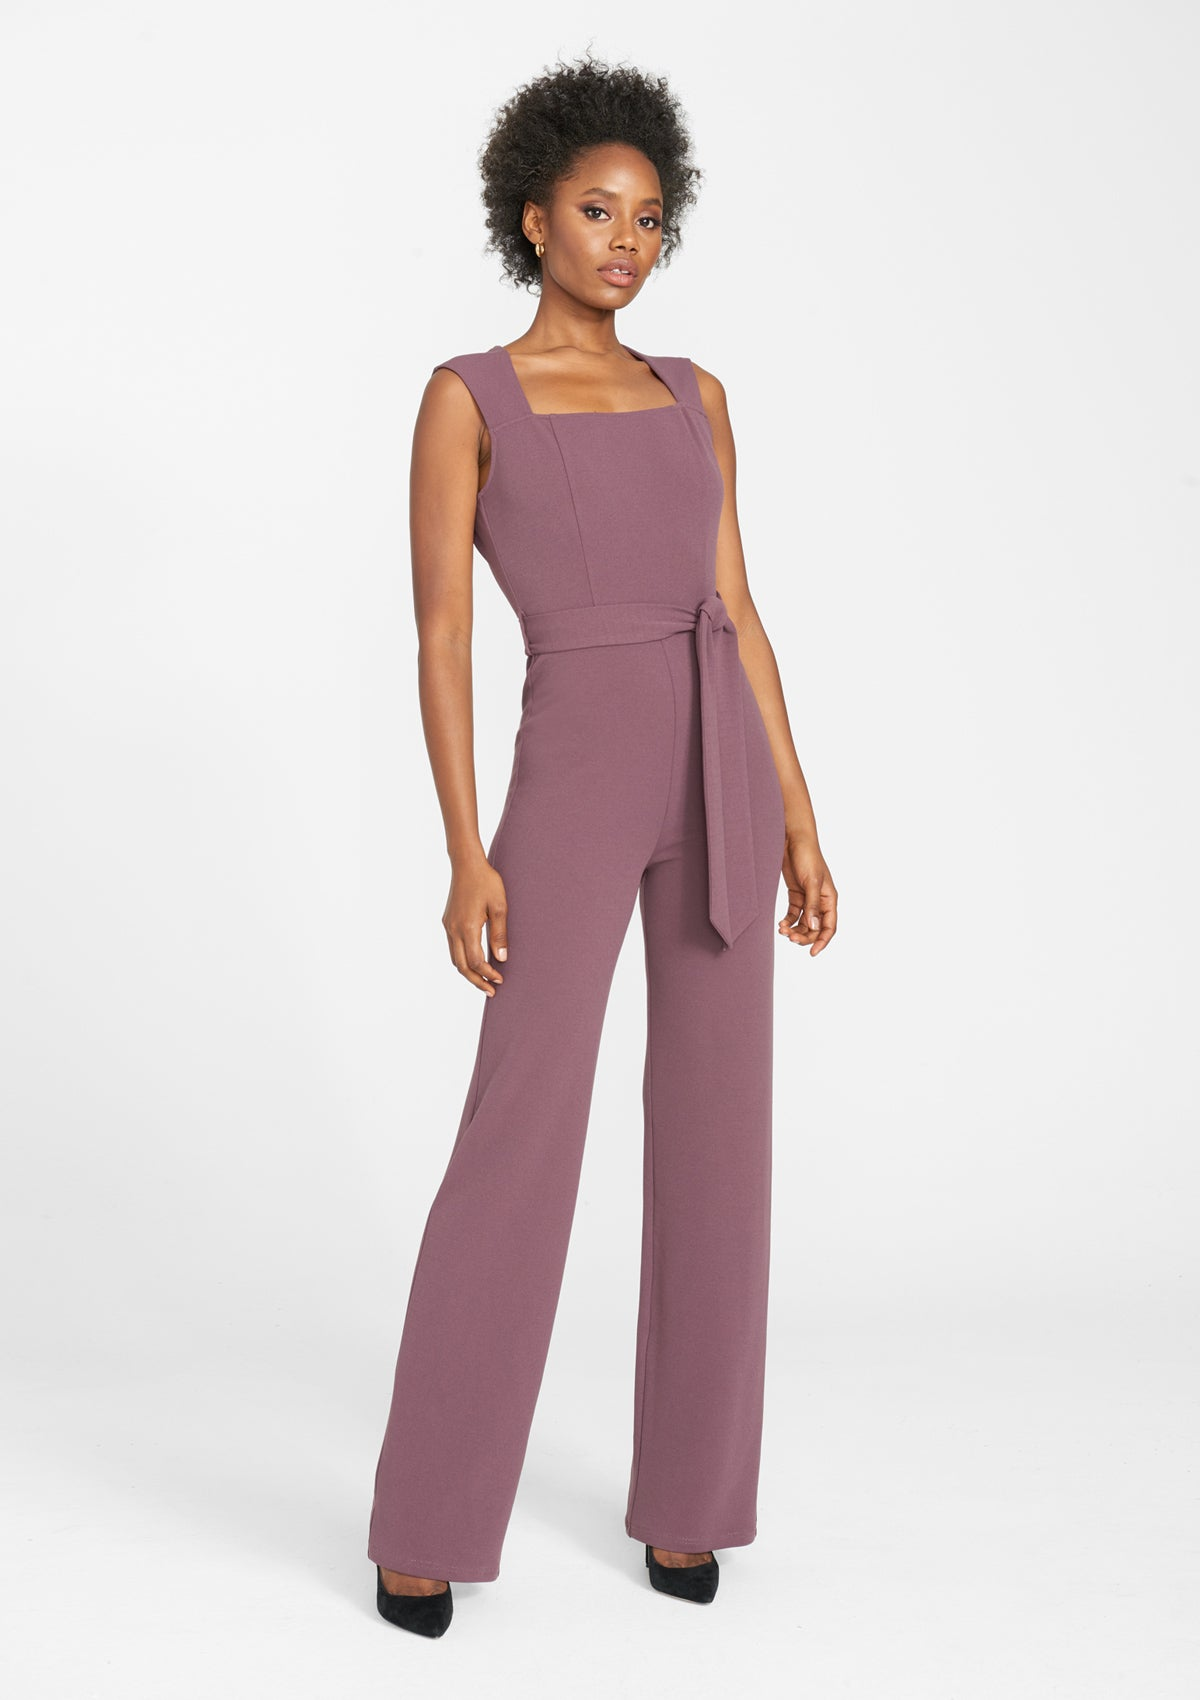 Alloy Apparel Tall Ava Jumpsuit 2.0 for Women in Dark Mauve Size S   Polyester